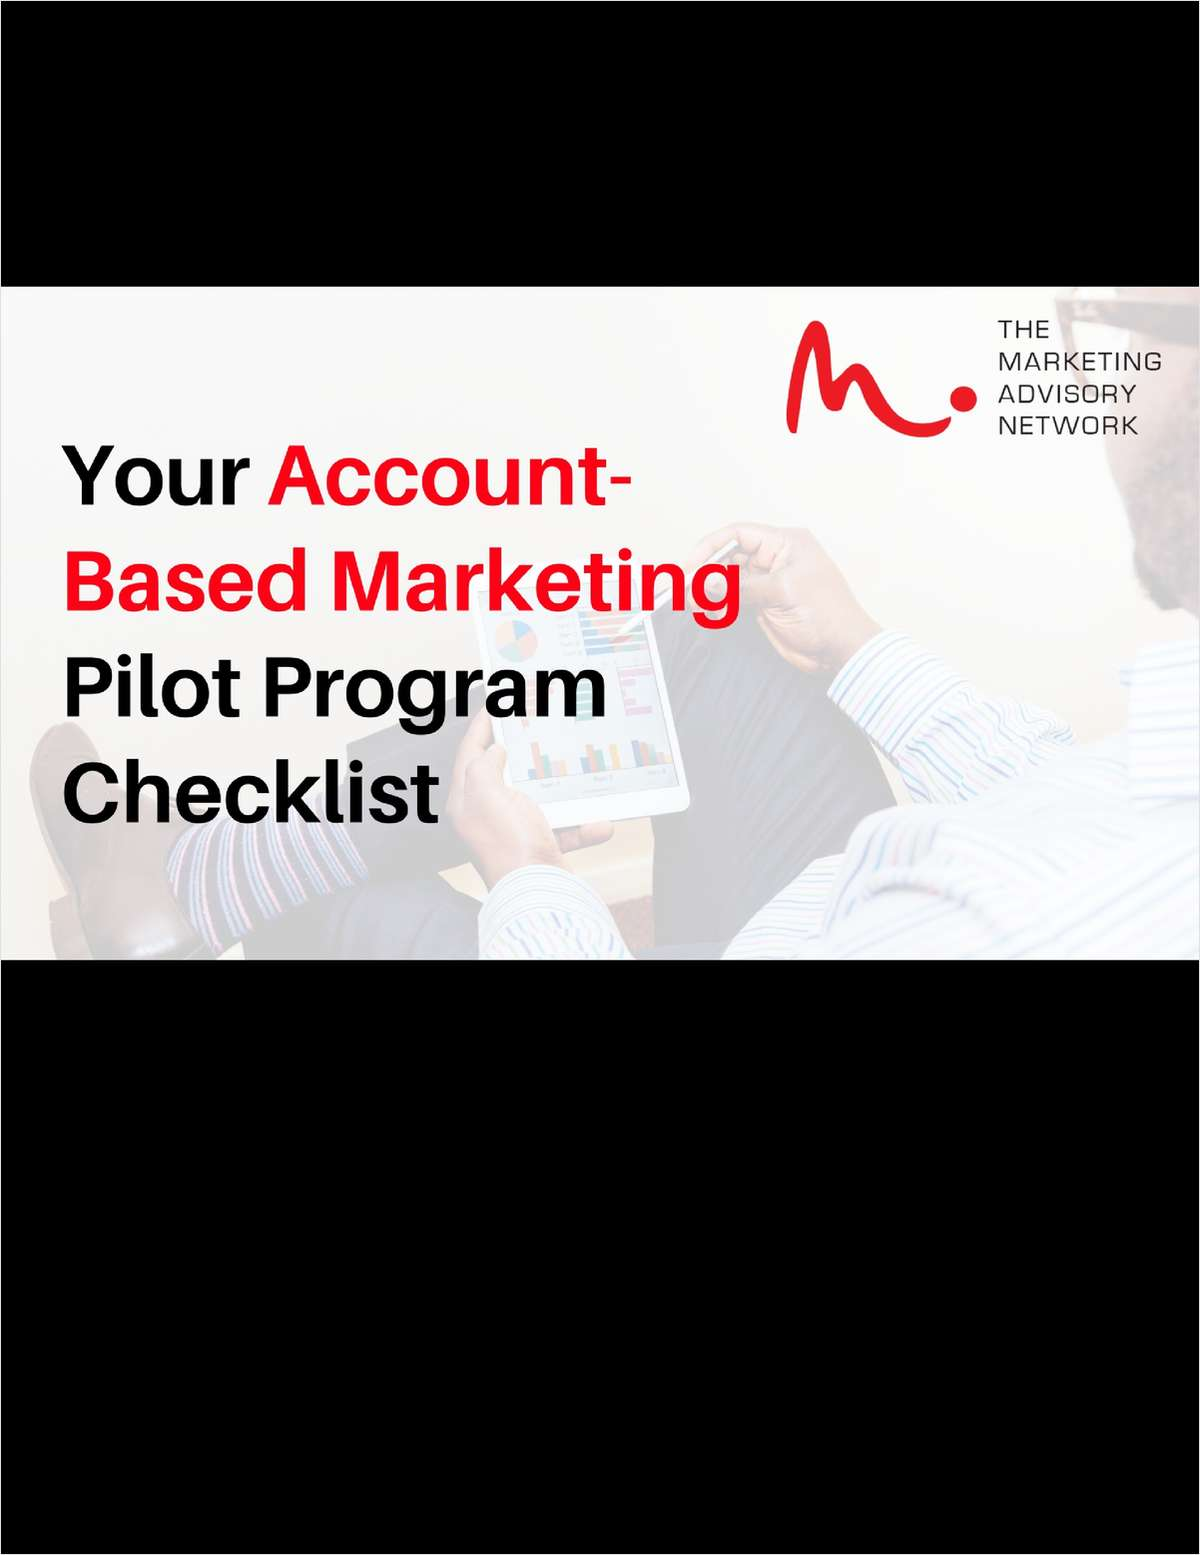 Your Account-Based Marketing Pilot Program Checklist